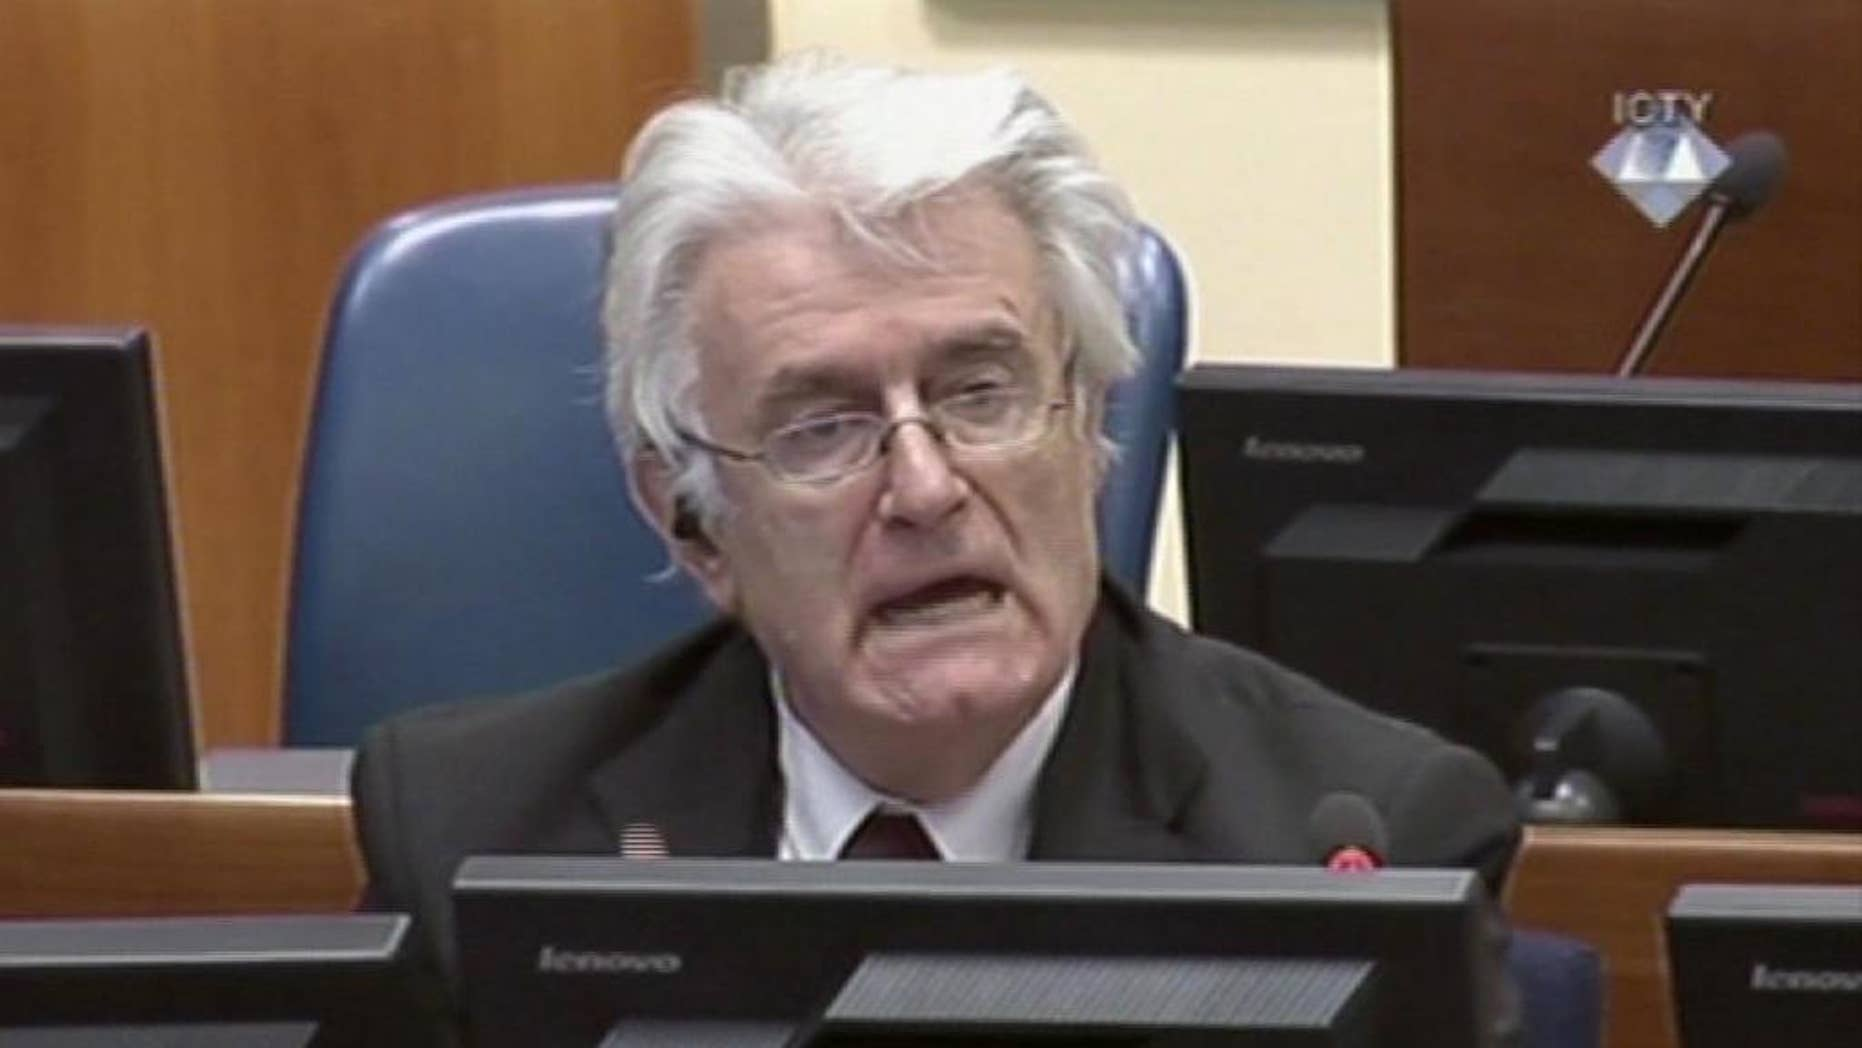 """Former Bosnian Serb leader Radovan Karadzic addresses the court of the International Criminal Tribunal for the former Yugoslavia in The Hague Netherlands in this image taken from TV, Wednesday Oct. 1, 2014. Karadzic insisted Wednesday that United Nations prosecutors do not have """"a shred of evidence"""" linking him to atrocities throughout the Bosnian war, and accused them of putting the entire Serb people on trial. In an 874-page written brief summarizing his defense, Karadzic said he should not be convicted by the U.N.'s Yugoslav war crimes tribunal, but acknowledged that, as wartime leader of the breakaway Serb entity in Bosnia, he """"bears moral responsibility for any crimes committed by citizens and forces of Republika Srpska."""" (AP Photo/ICTY via Associated Press Television)"""